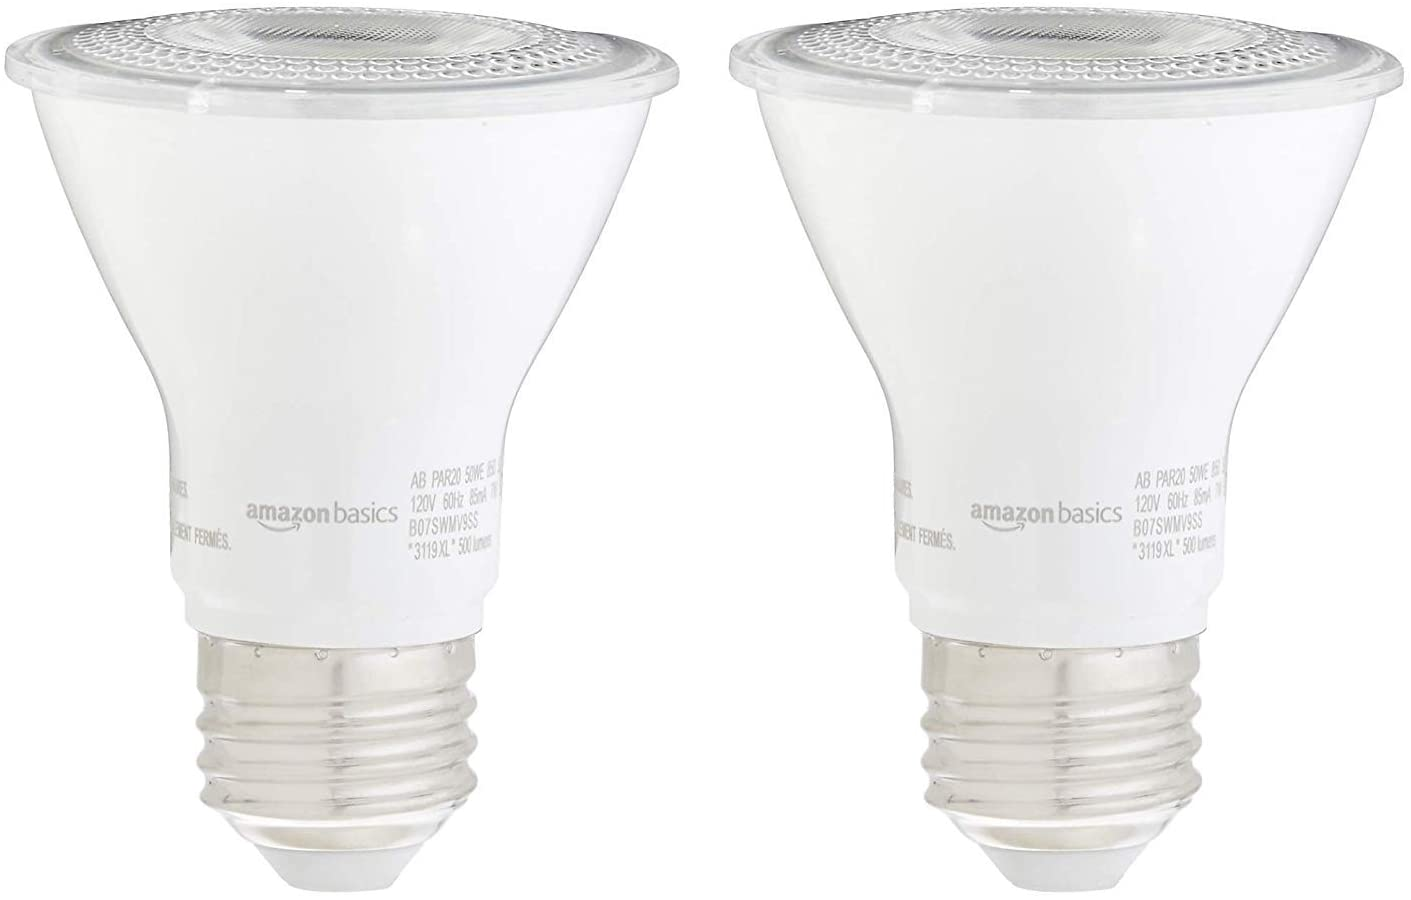 AmazonBasics 50W Equivalent, Daylight, Dimmable, 10,000 Hour Lifetime, PAR20 LED Light Bulb | 2-Pack